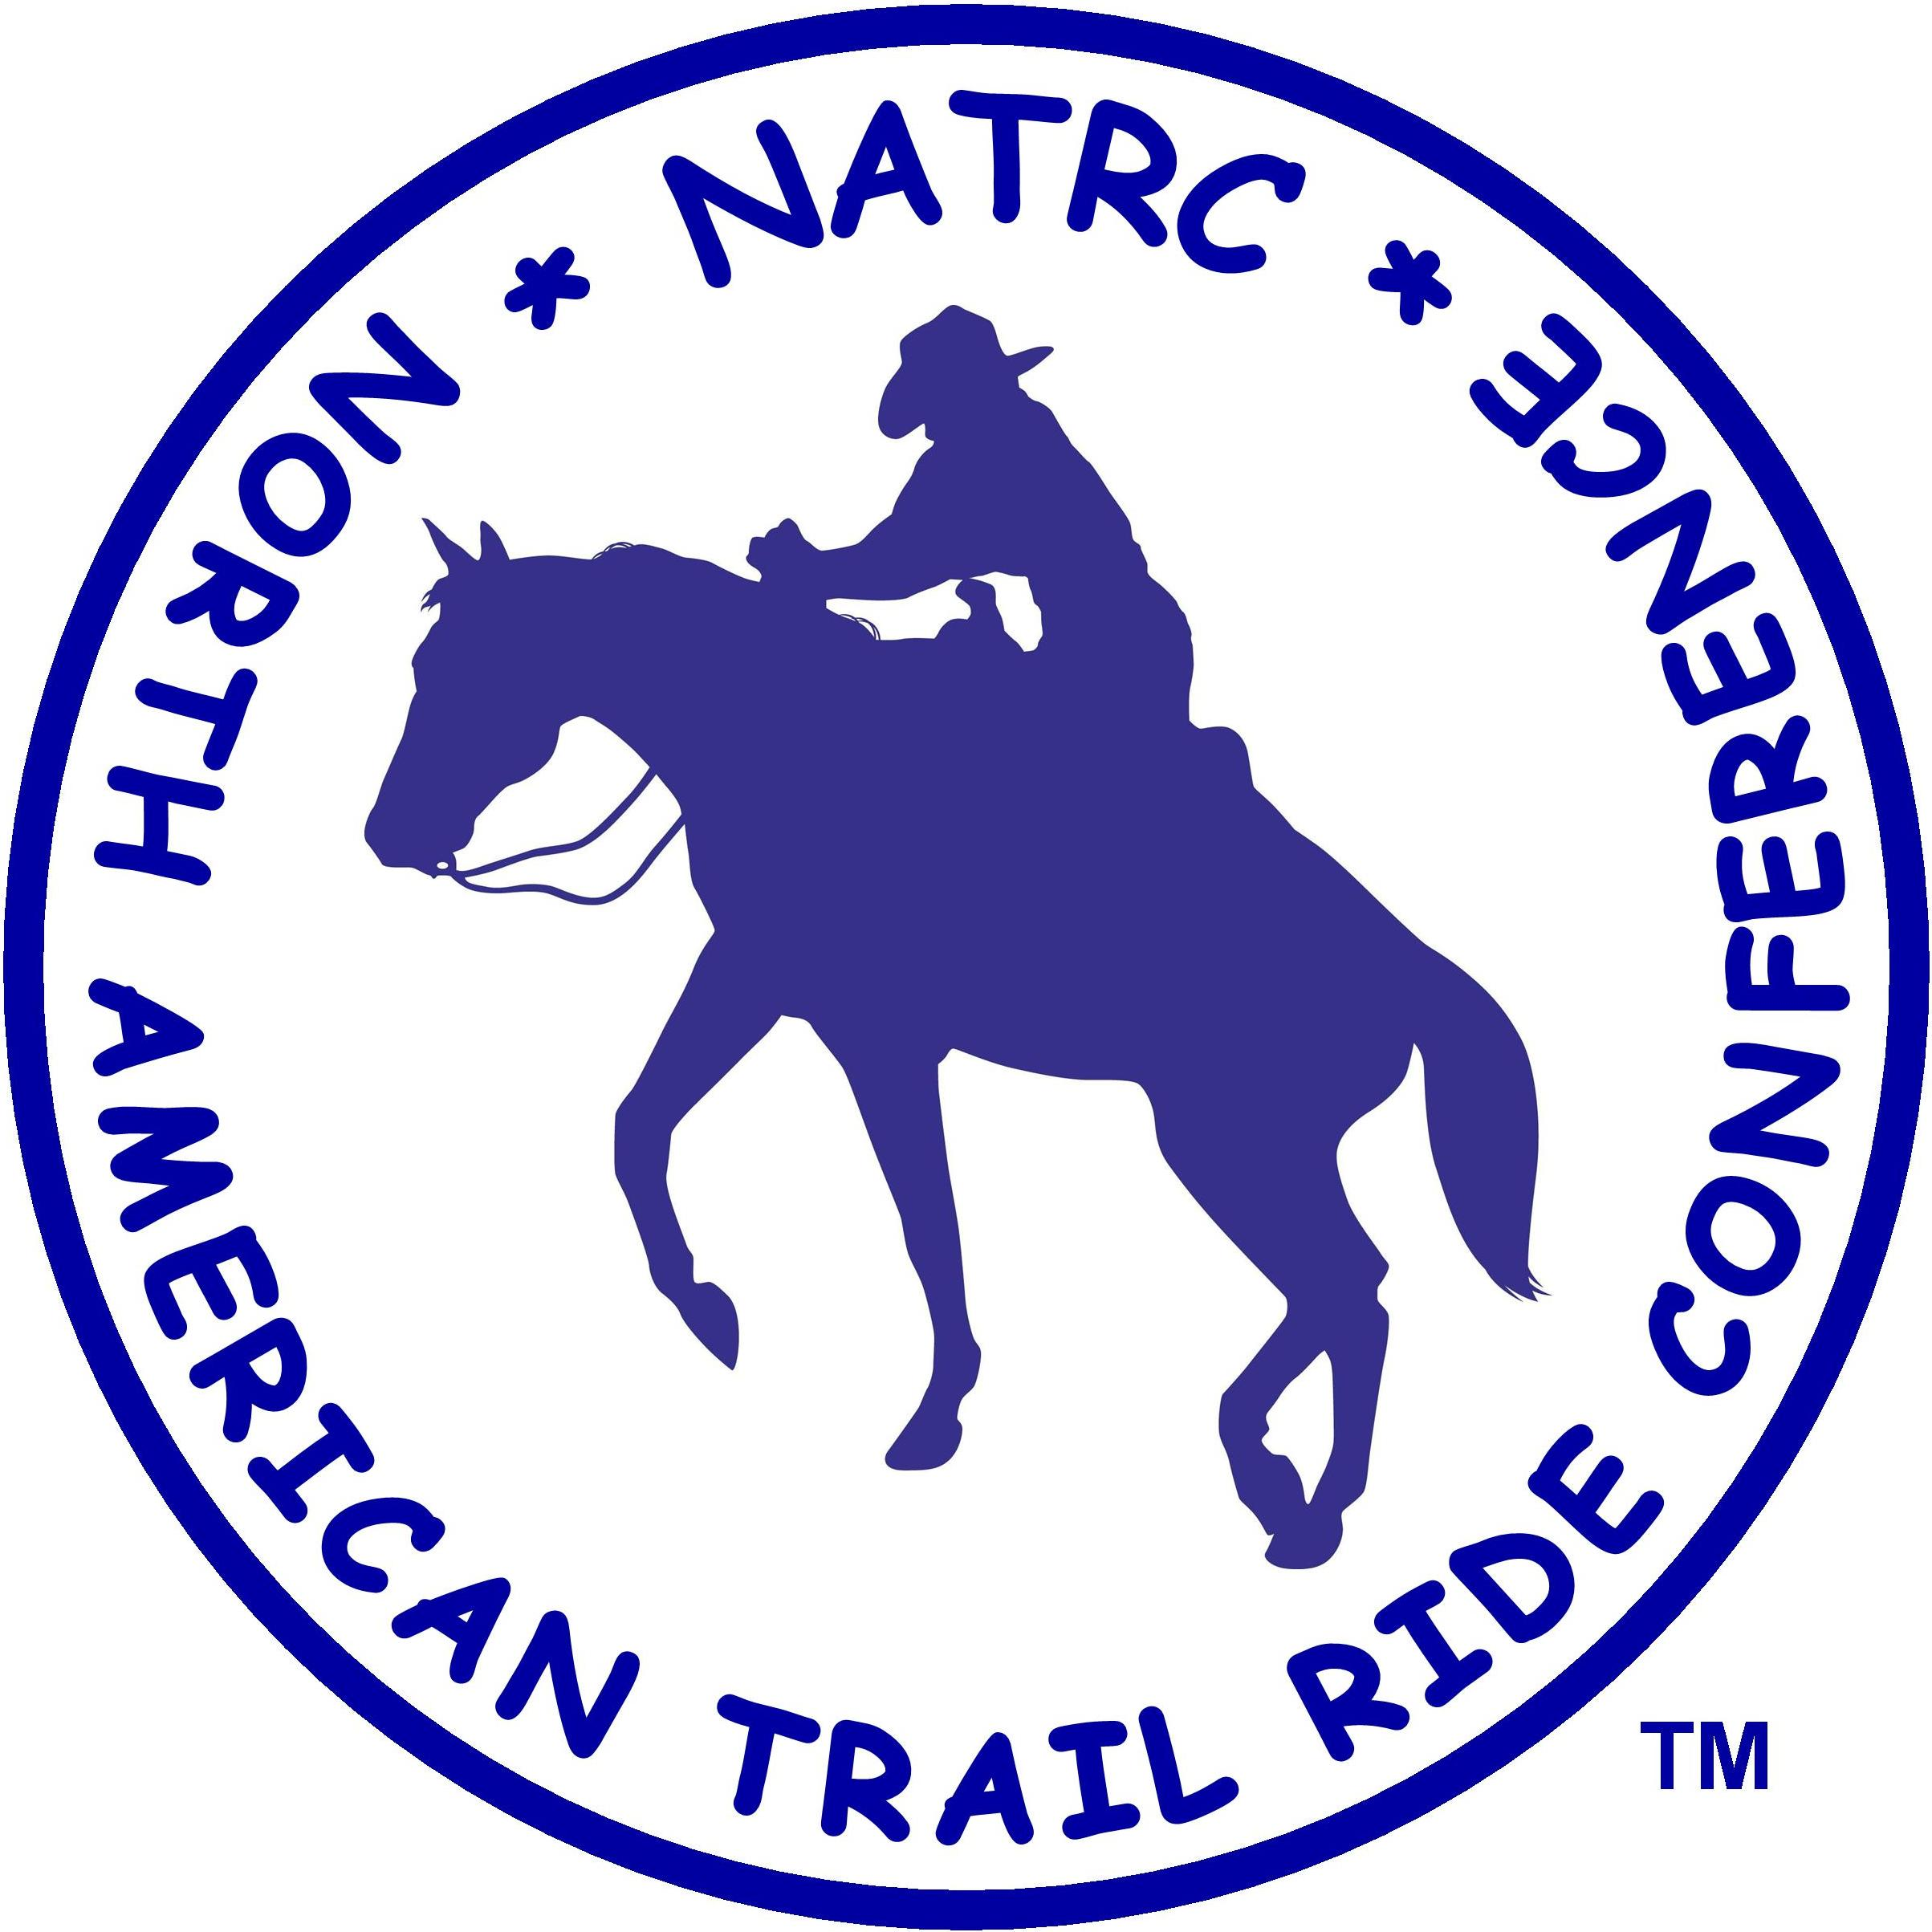 Trail Riders Economic Impact, Jan's Big Adventure Continues – by NATRC for 09-21-17